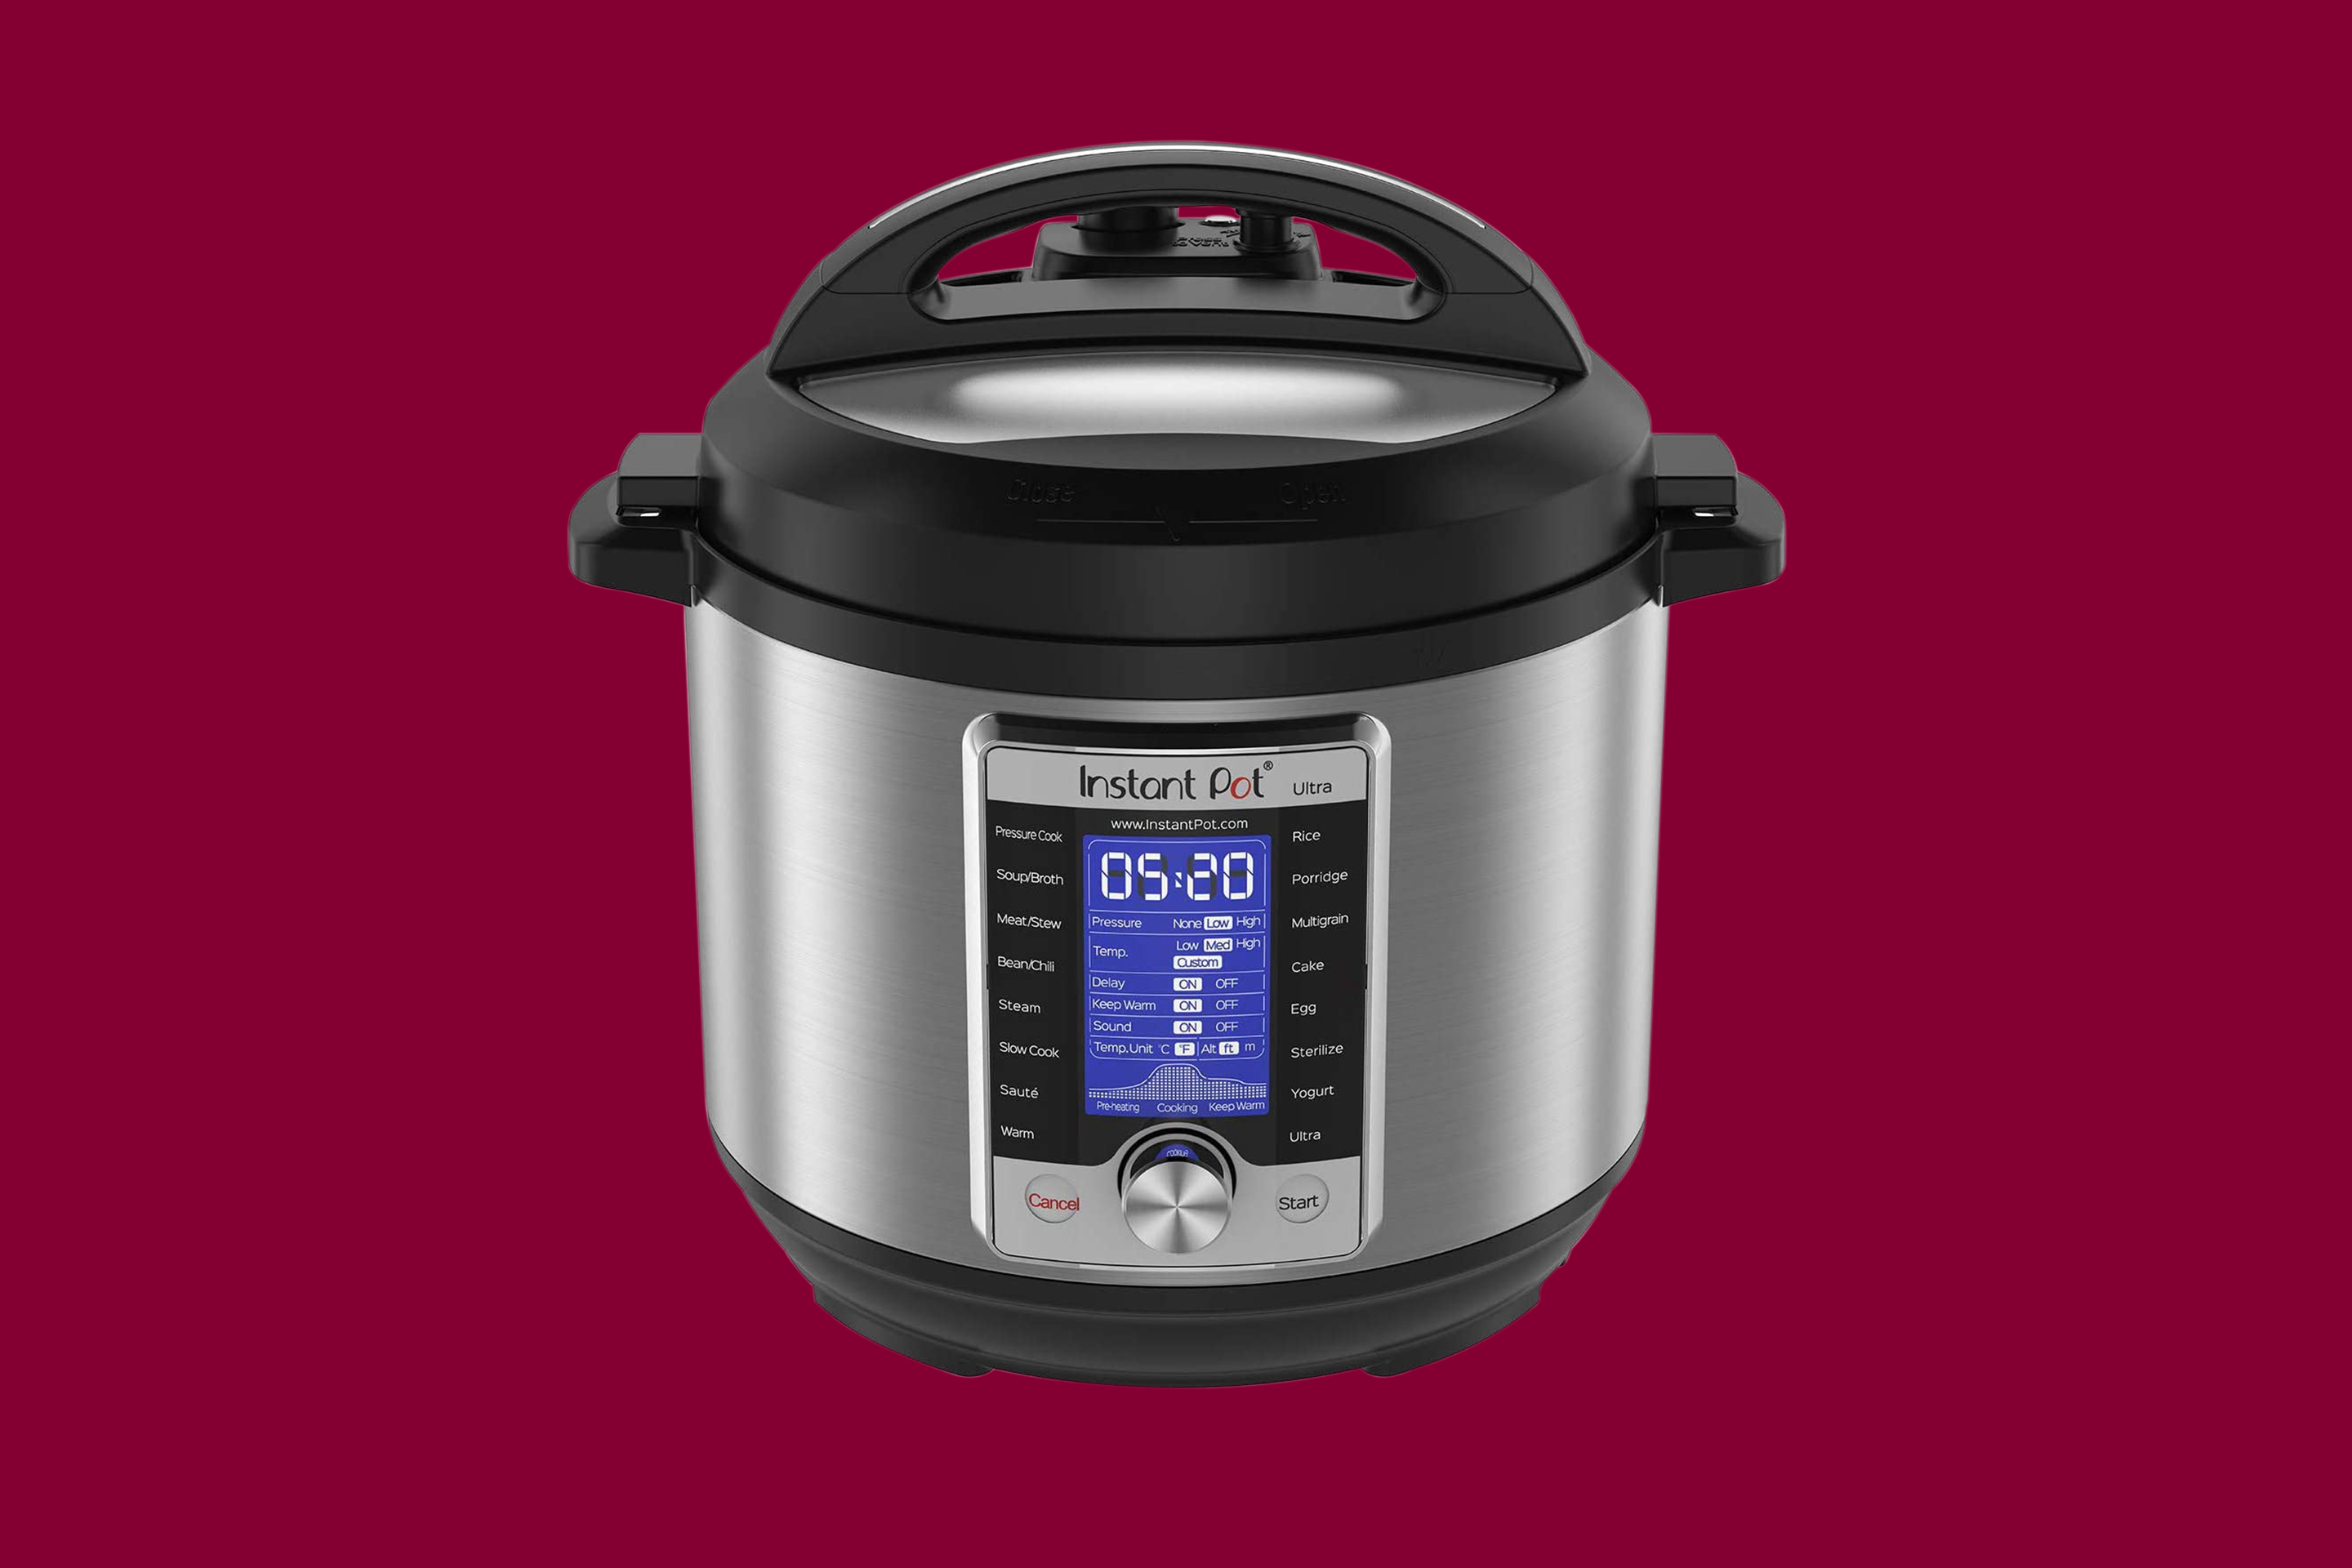 The Best Instant Pots and Pressure Cookers for Your Money, According to Food Bloggers